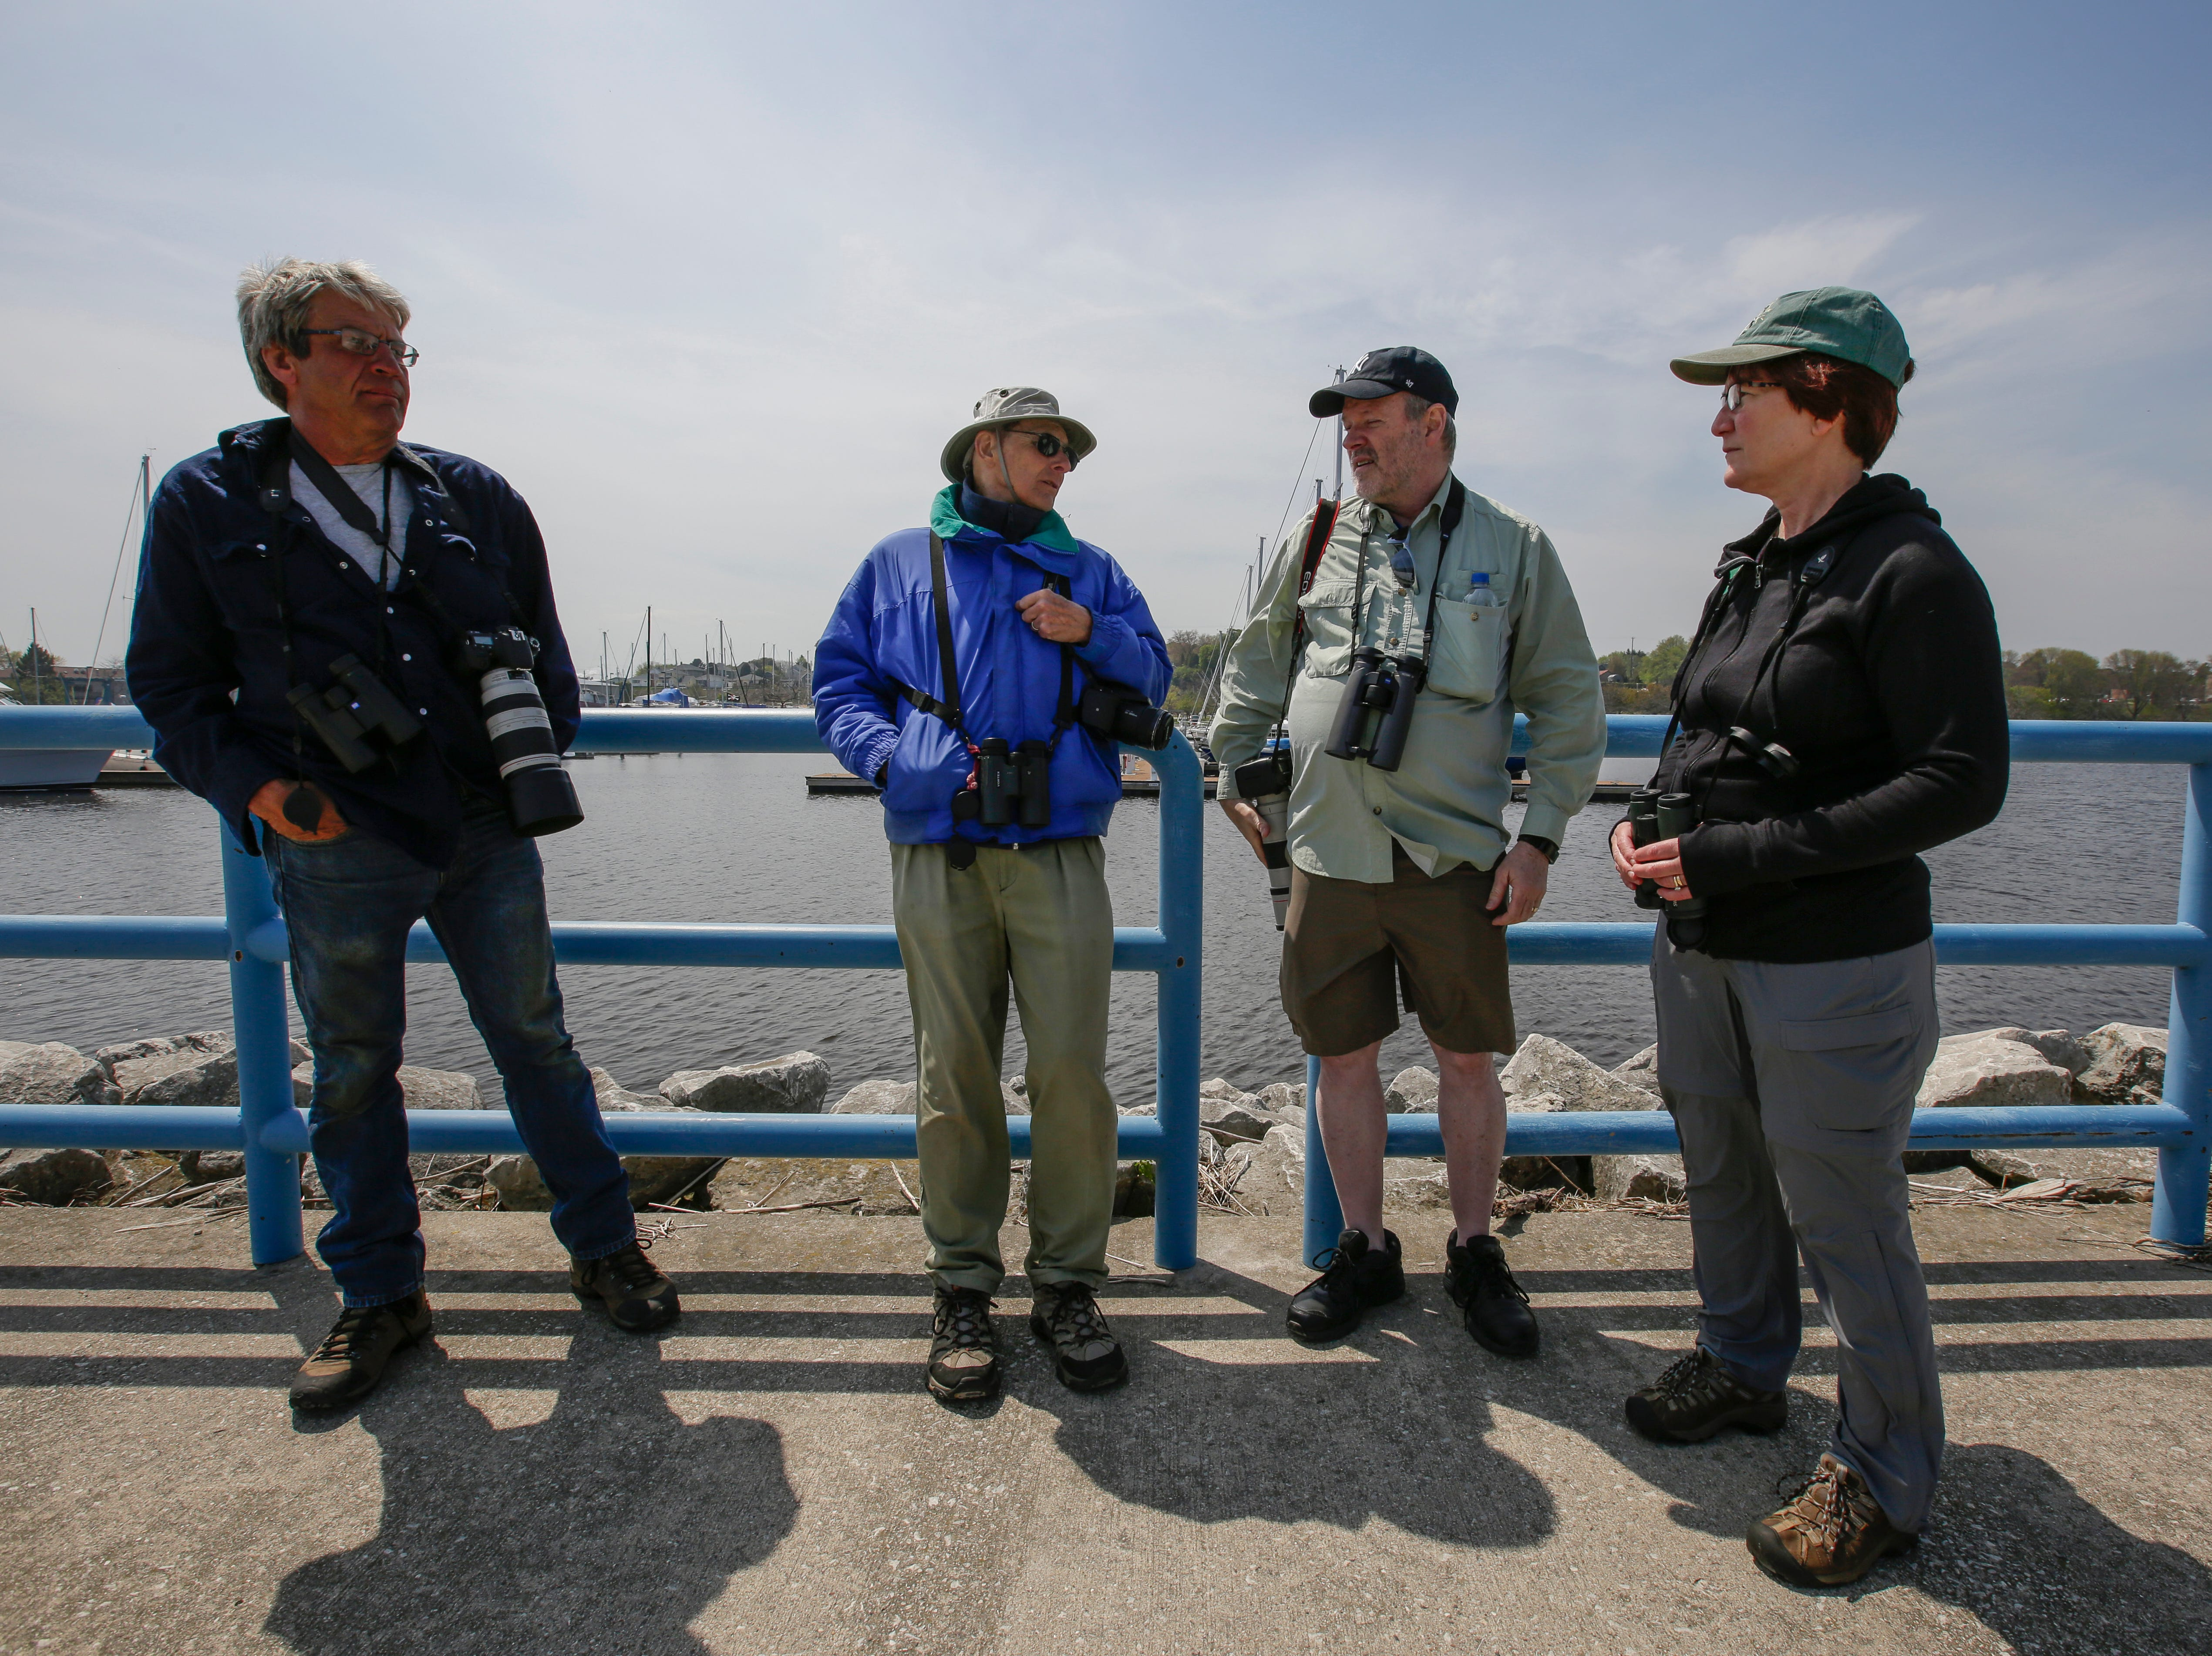 UW-Manitowoc professor emeritus Chuck Sontag, center left, shares his knowledge of shorebirds with other birders visiting the containment area along Lake Michigan Thursday, May 24, 2018, in Manitowoc, Wis. Sontag has recorded more than 300 species of birds along the lakeshore since he began birding the area. His dedication and enthusiasm has helped turn the Manitowoc lakeshore into a destination for birders from all over the country. Josh Clark/USA TODAY NETWORK-Wisconsin